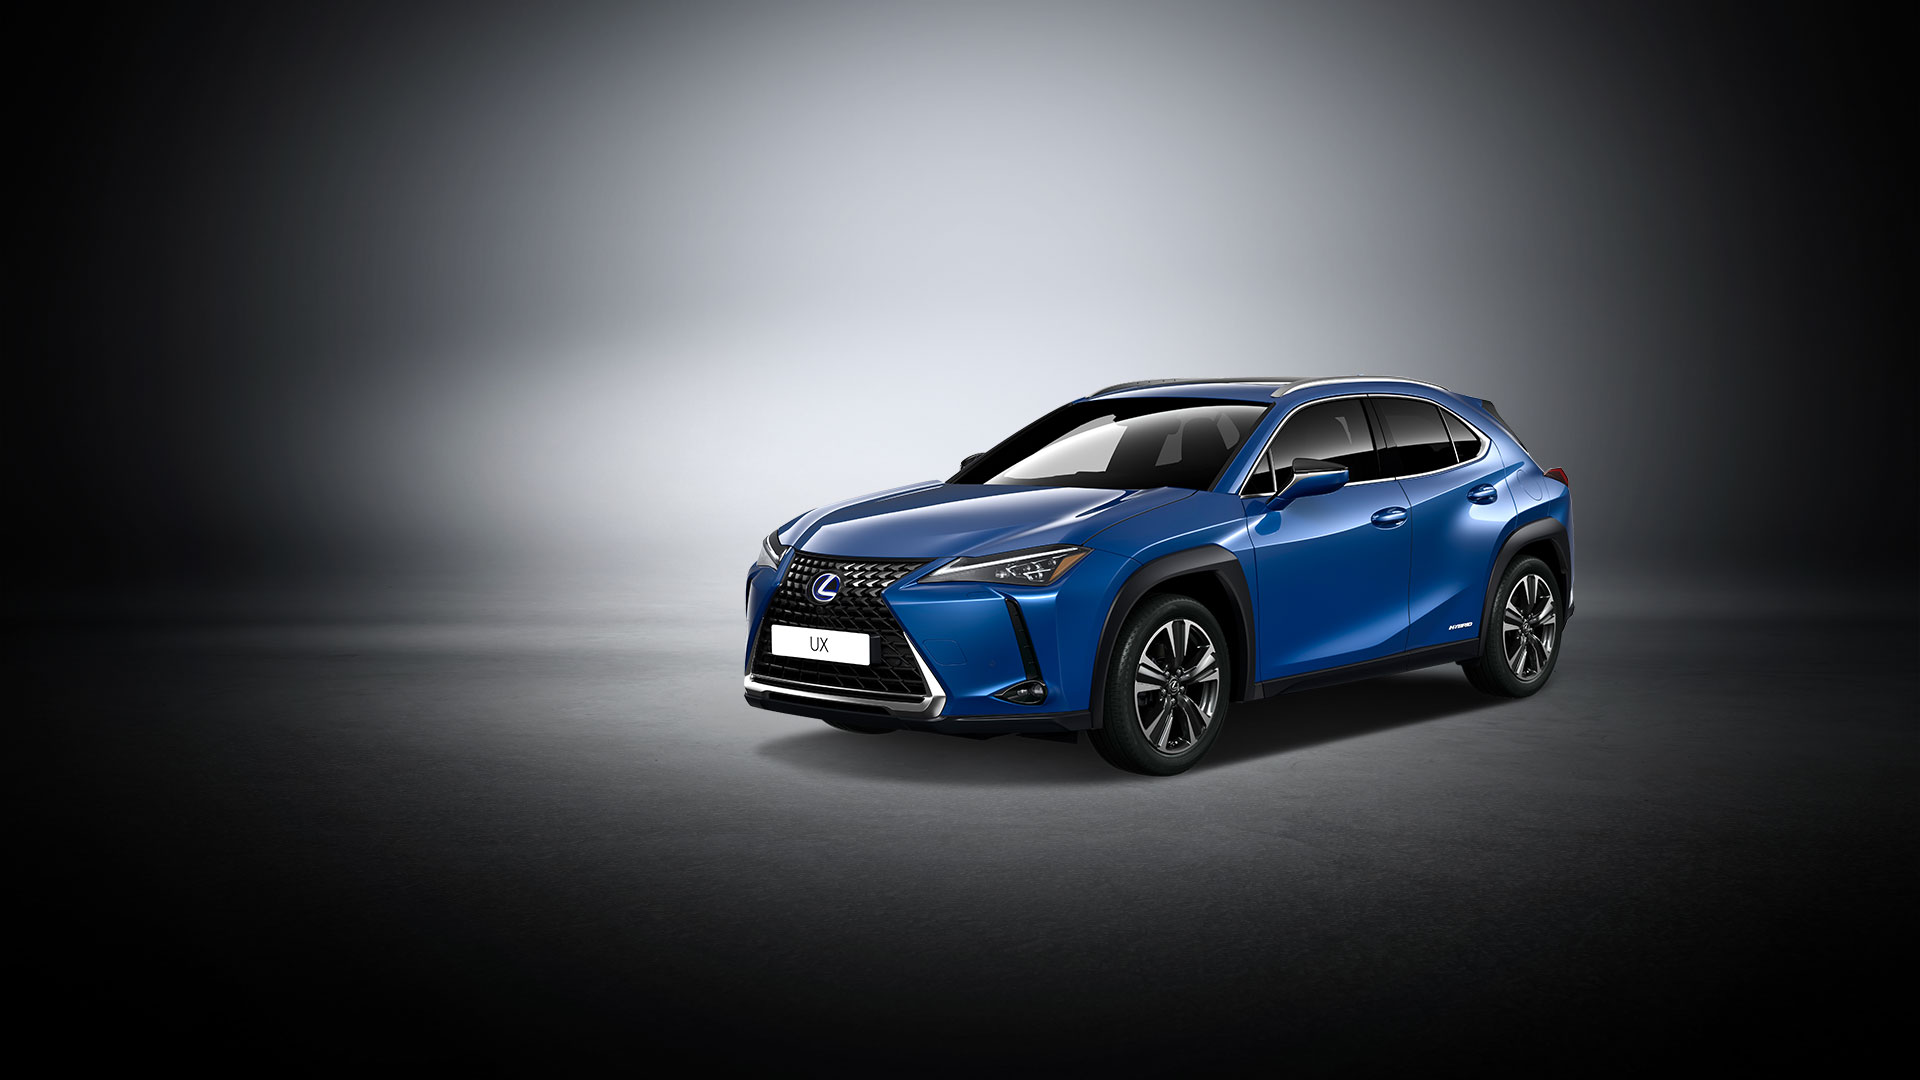 2018 lexus ux interactive design colour celestial blue product